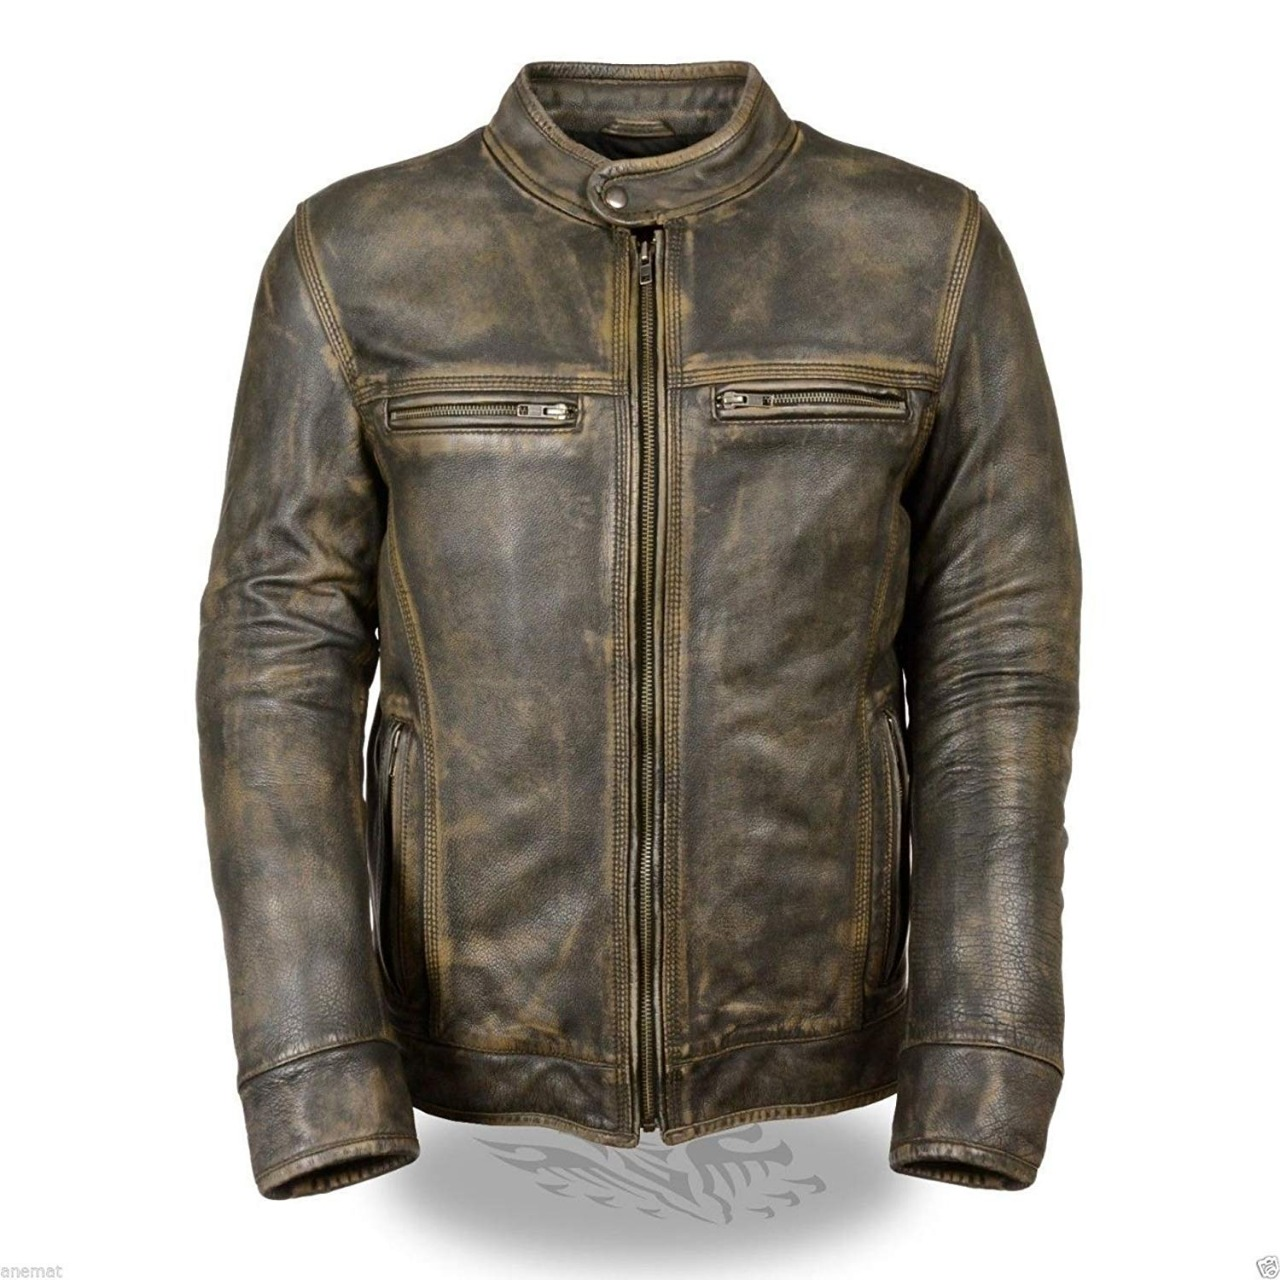 Superhero Leather Jacket Men Cafe Racer Vintage Distressed Brown Motorcycle Leather Jacket